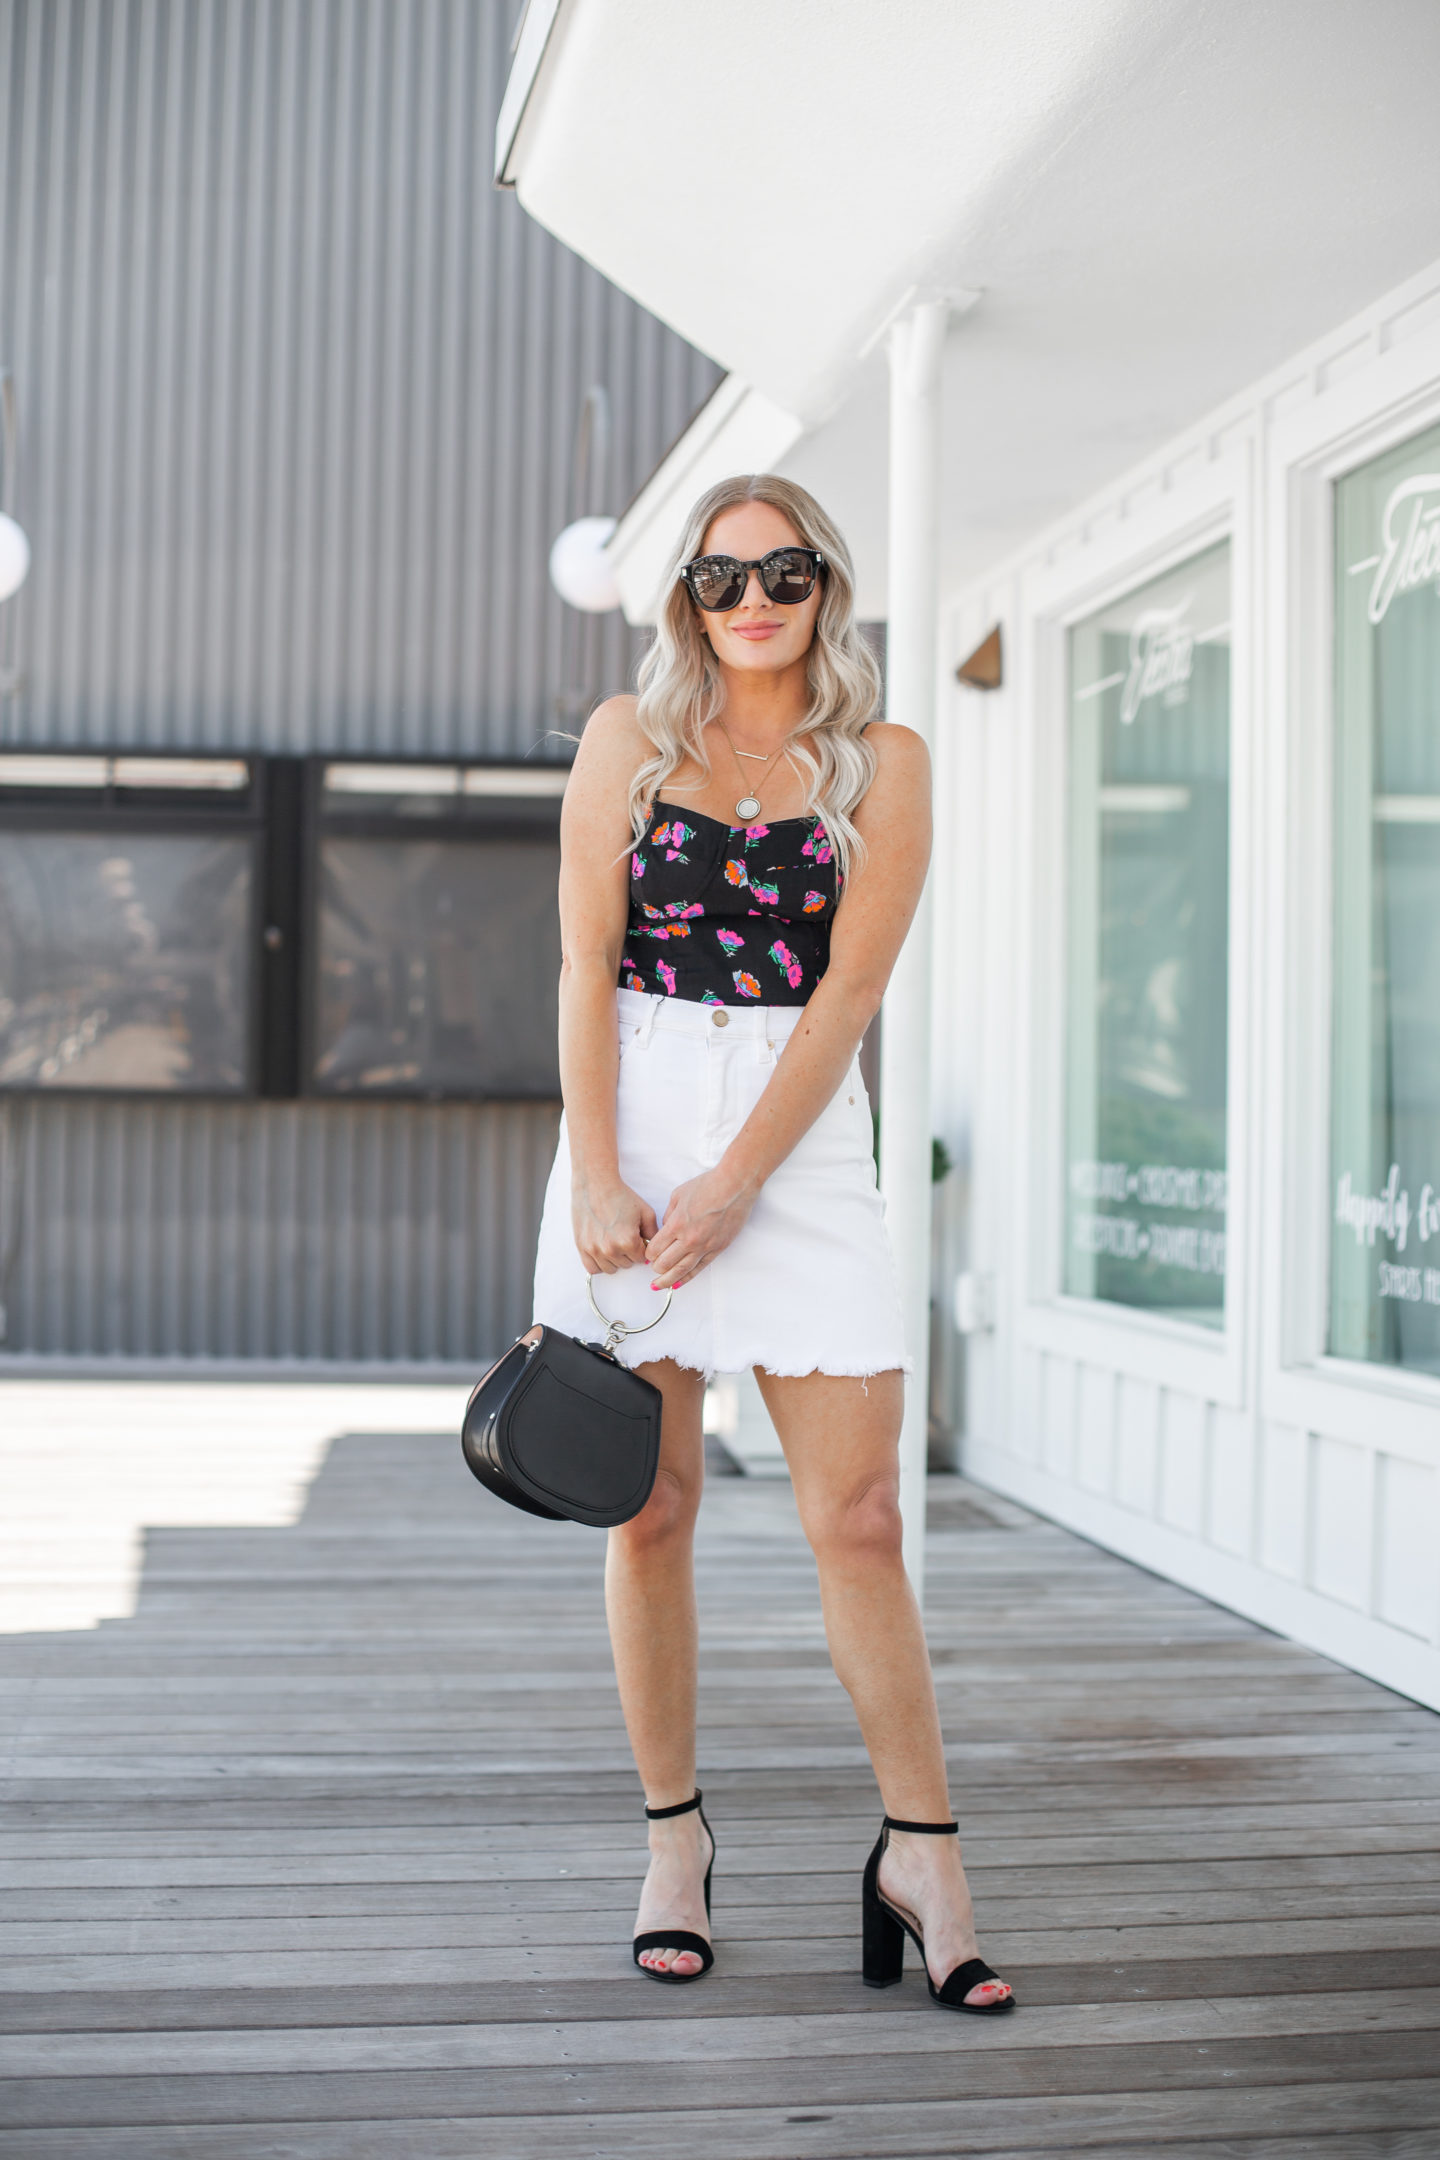 Victoria Emerson Jewelry Christmas in July Sale top picks featured by top US fashion blog, Dress Me Blonde: image of a woman wearing a 7 for all Mankind denim skirt, Chloe bracelet crossbody bag, Sam Edelman strap sandals, WAYF cami tank top and Victoria Emerson pendant necklaces